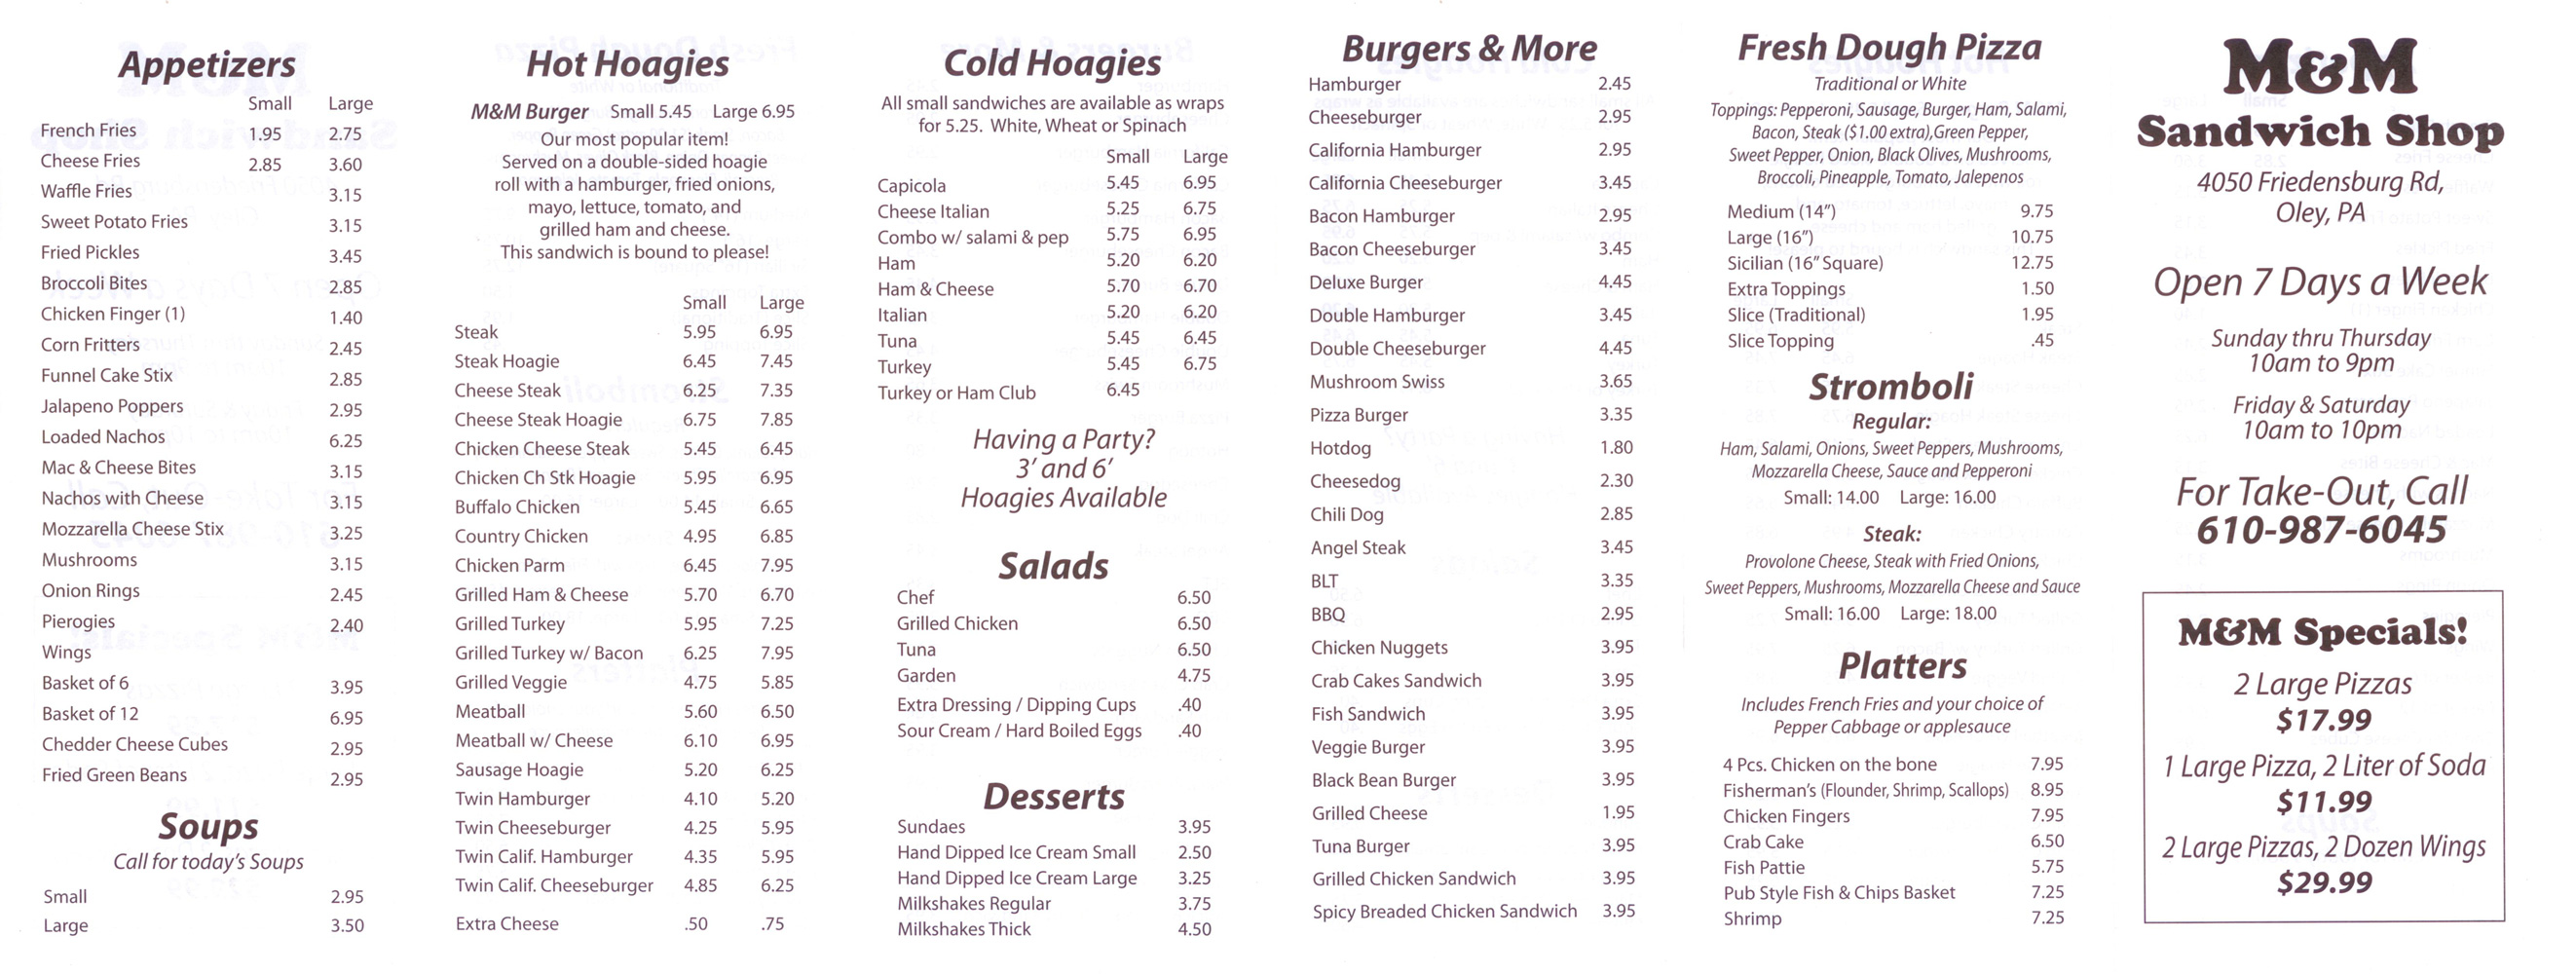 M&M Sandwich Shop Menu